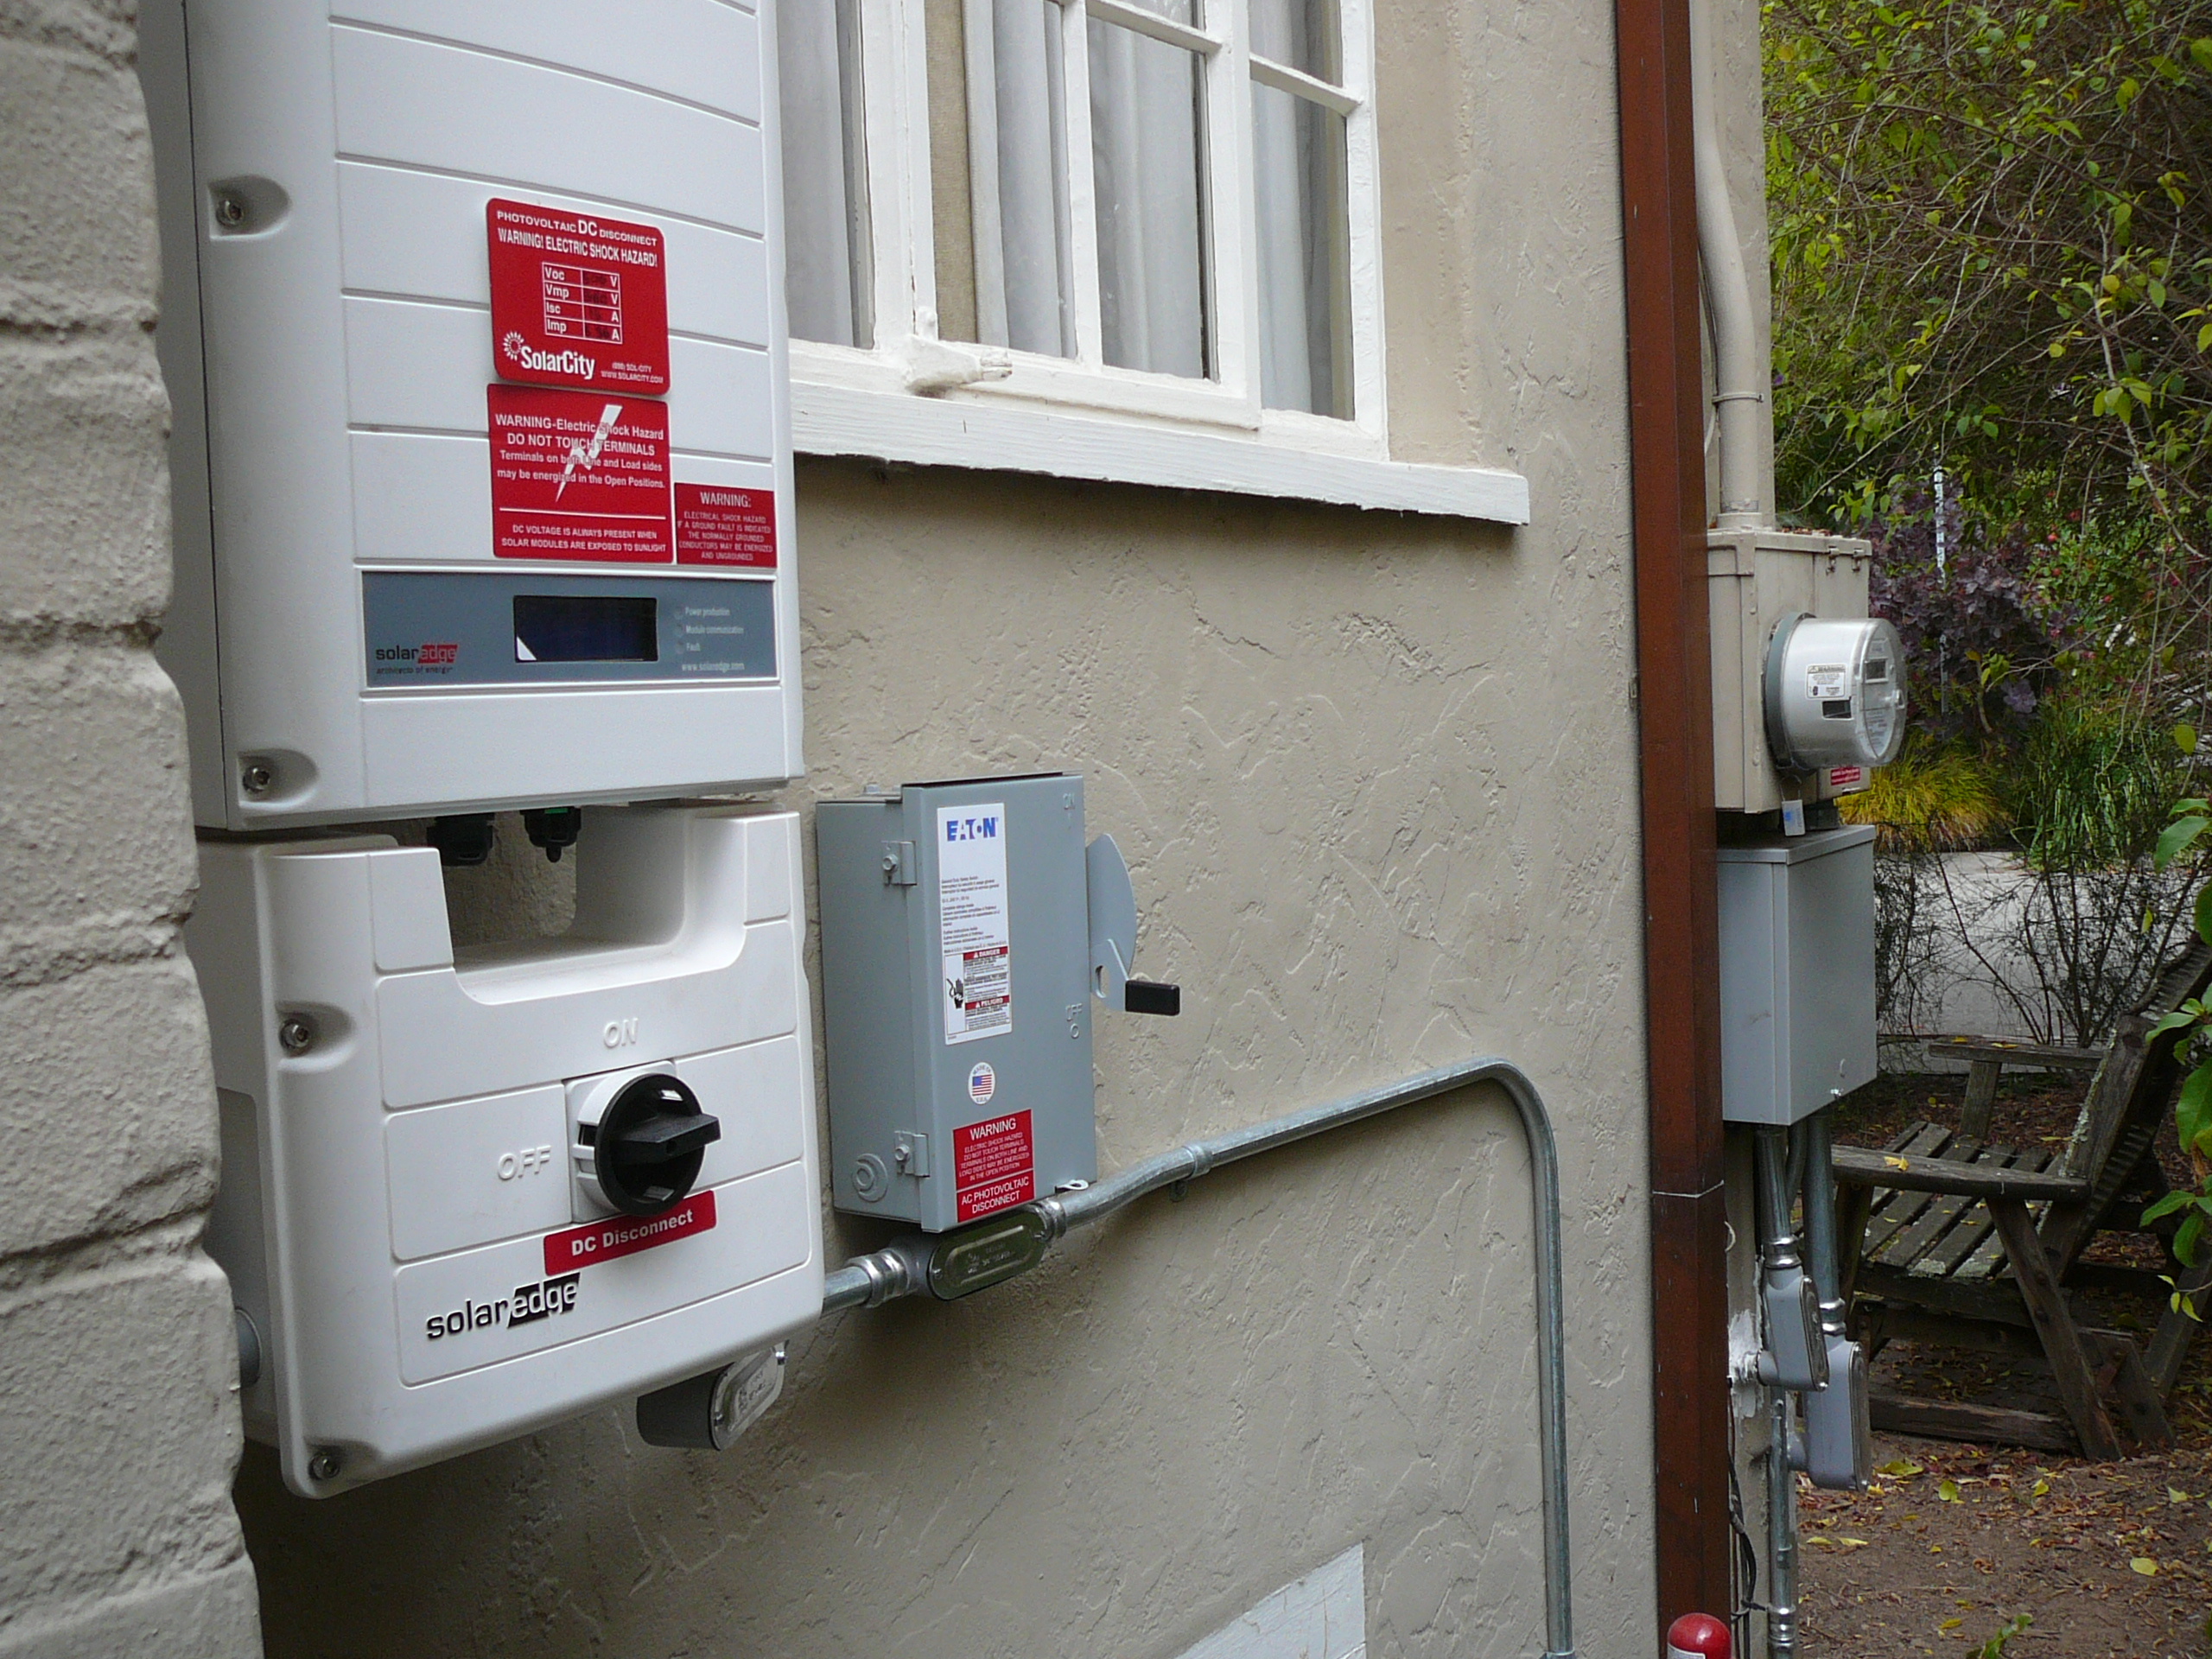 Left to right: inverter, off-on switch, conduit, old and new box